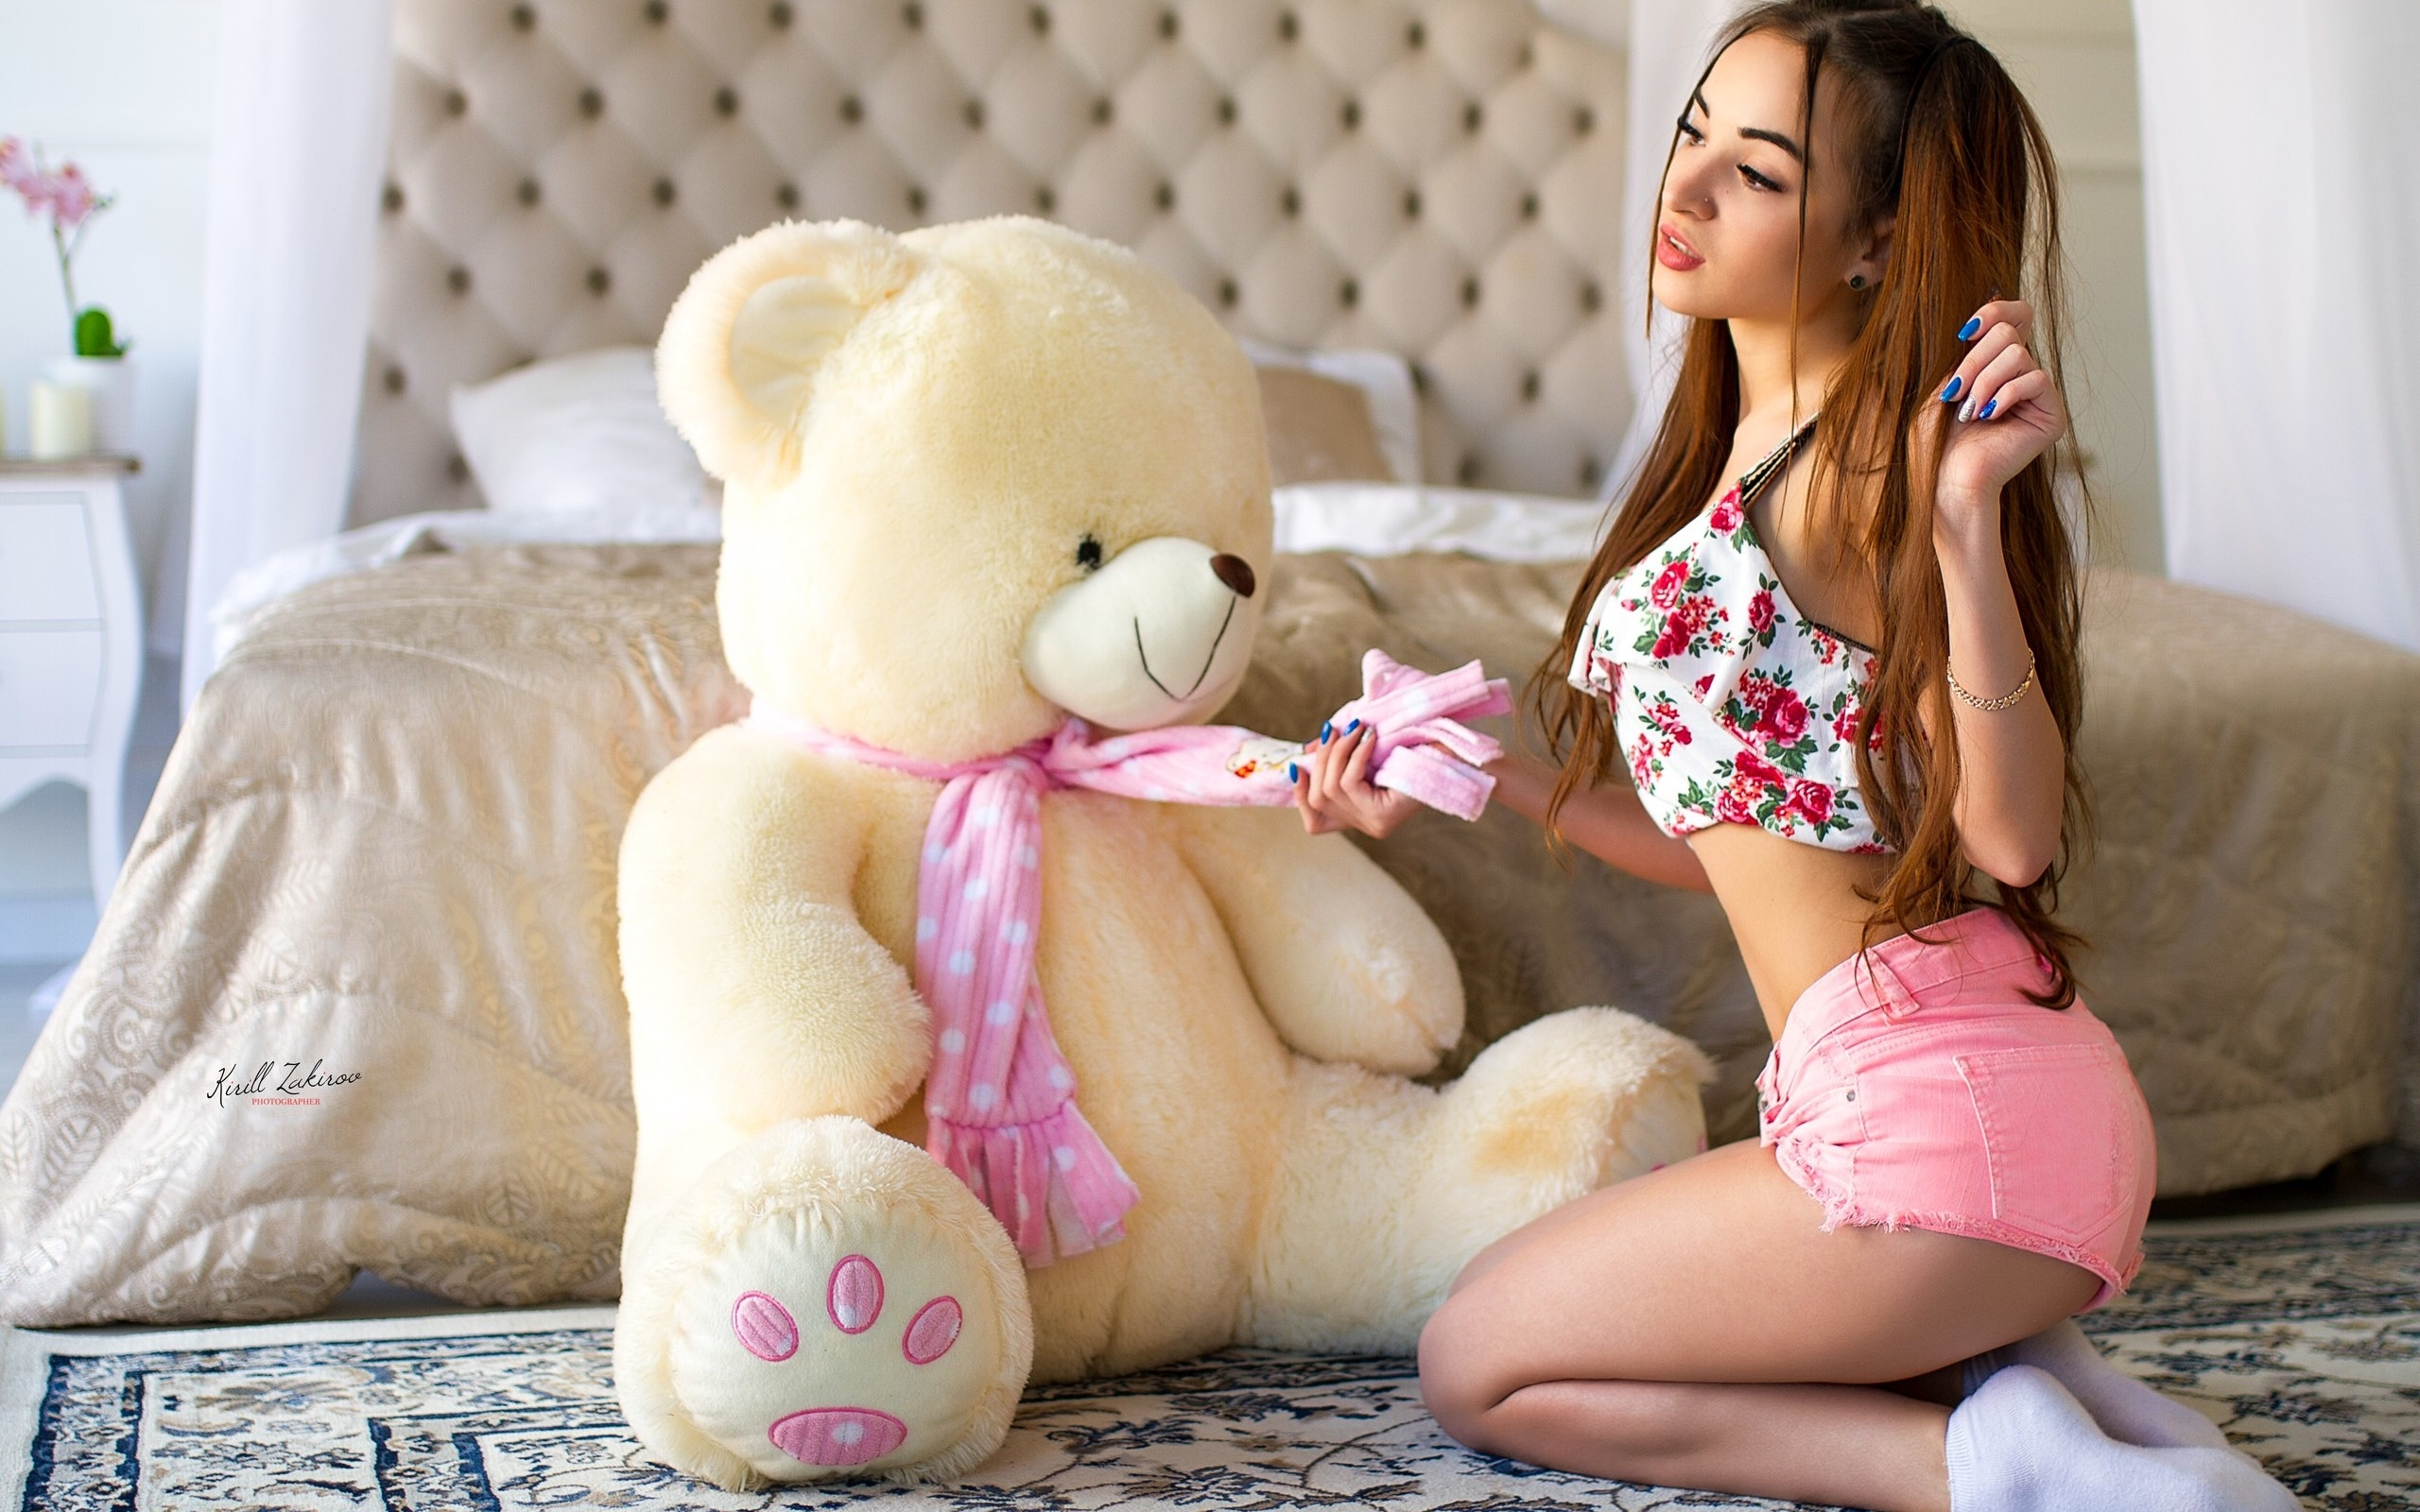 Woman hot n sexy pose with teddy bear fit